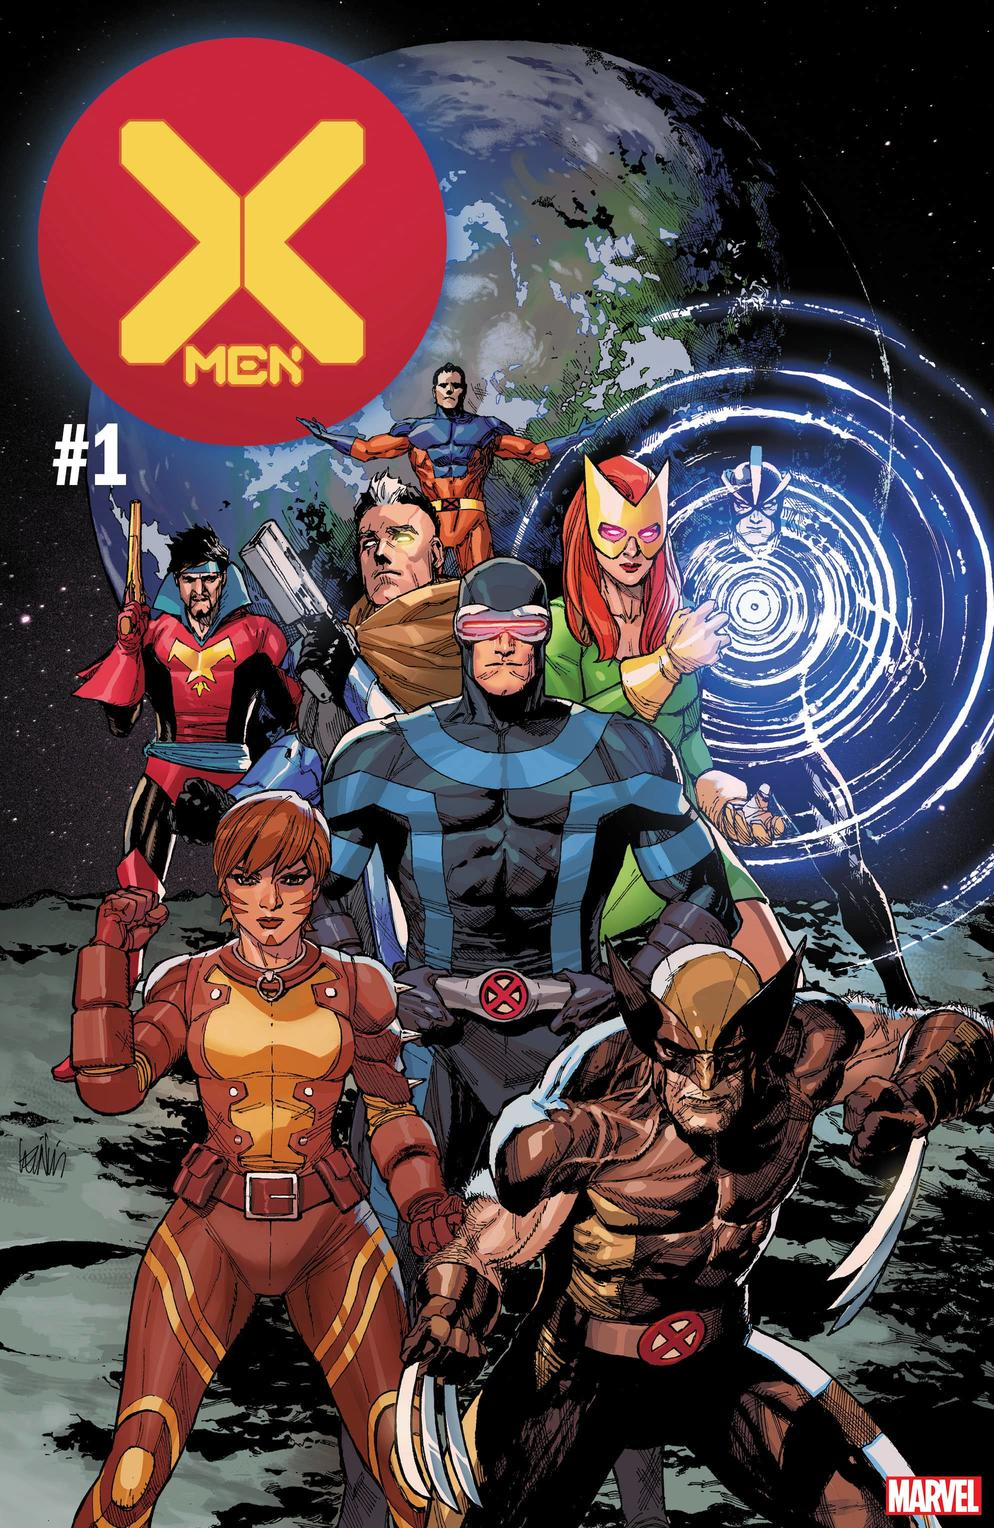 X-MEN #1 cover by Leinil Yu